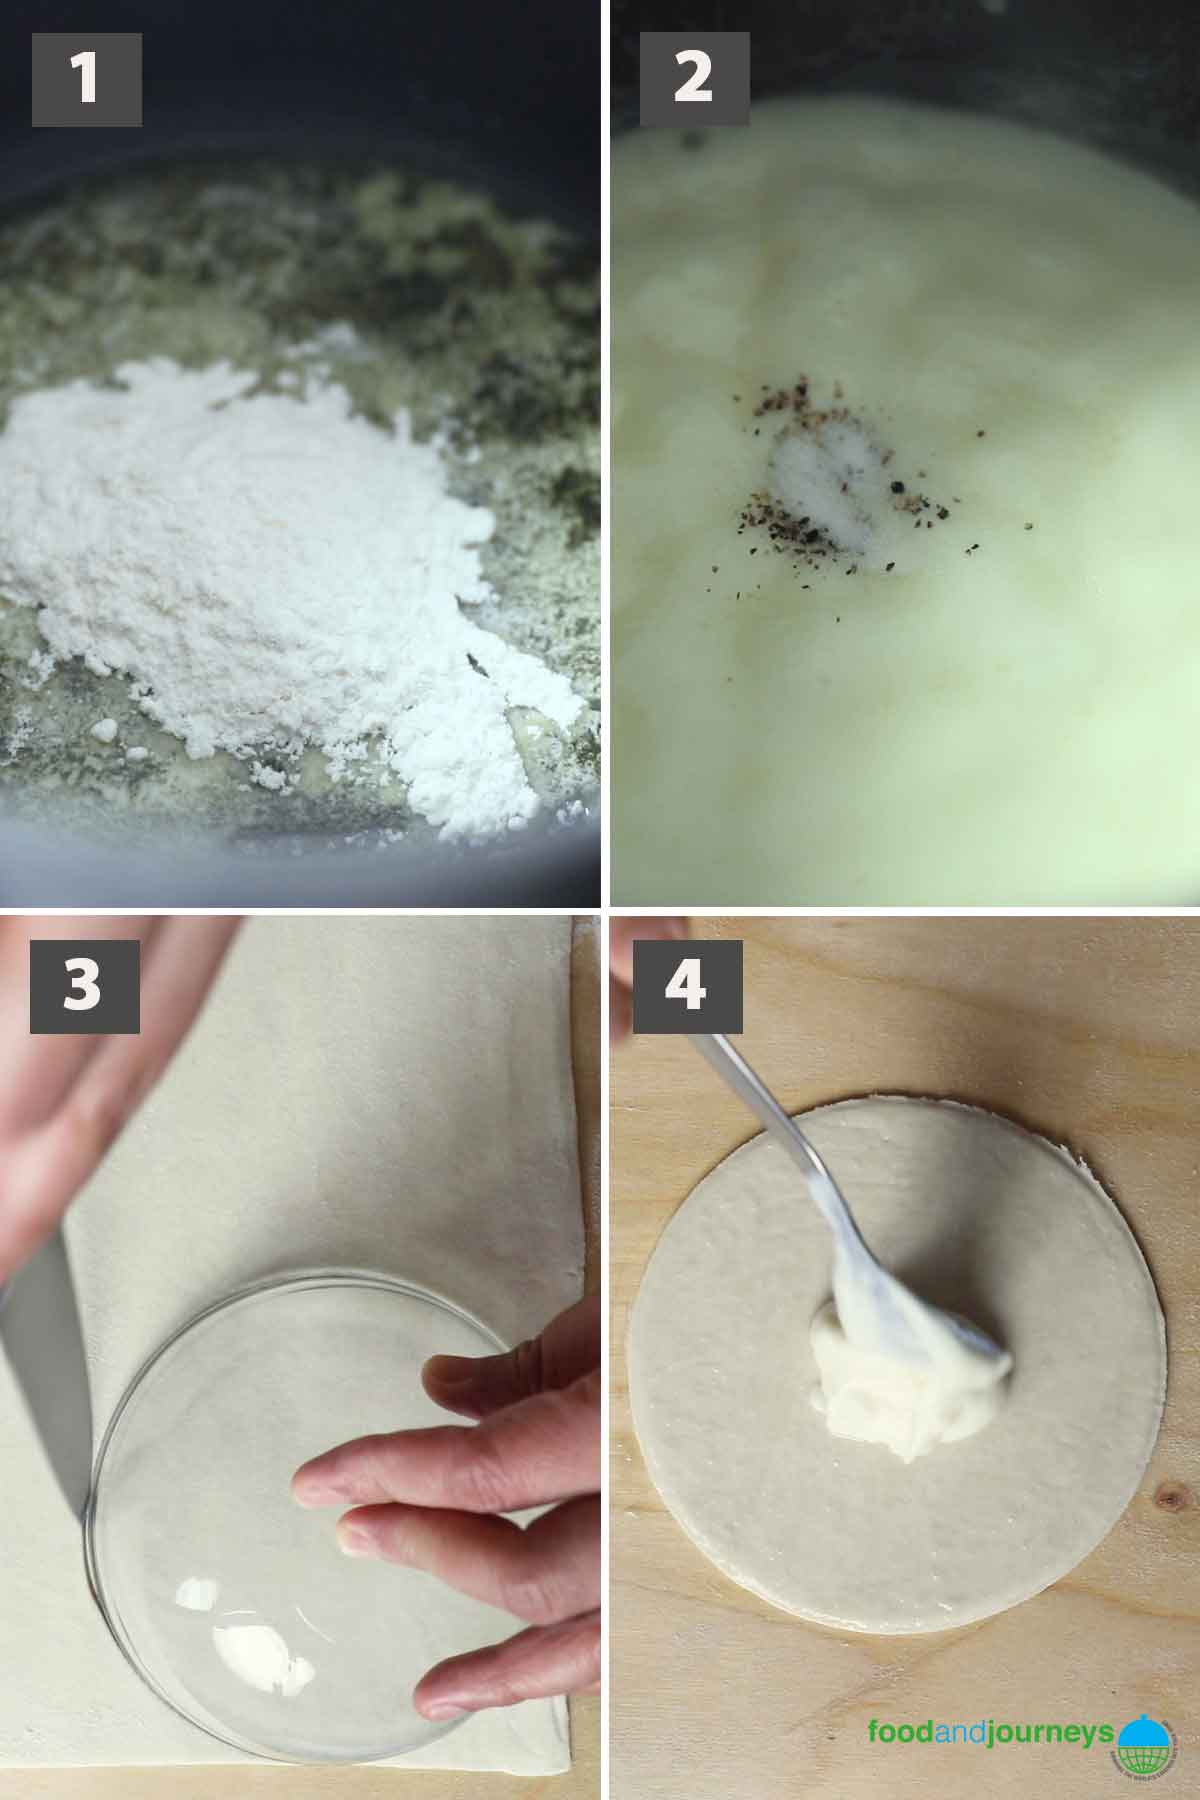 First part of a collage of images showing the step by step process on how to make rustico pastry at home.